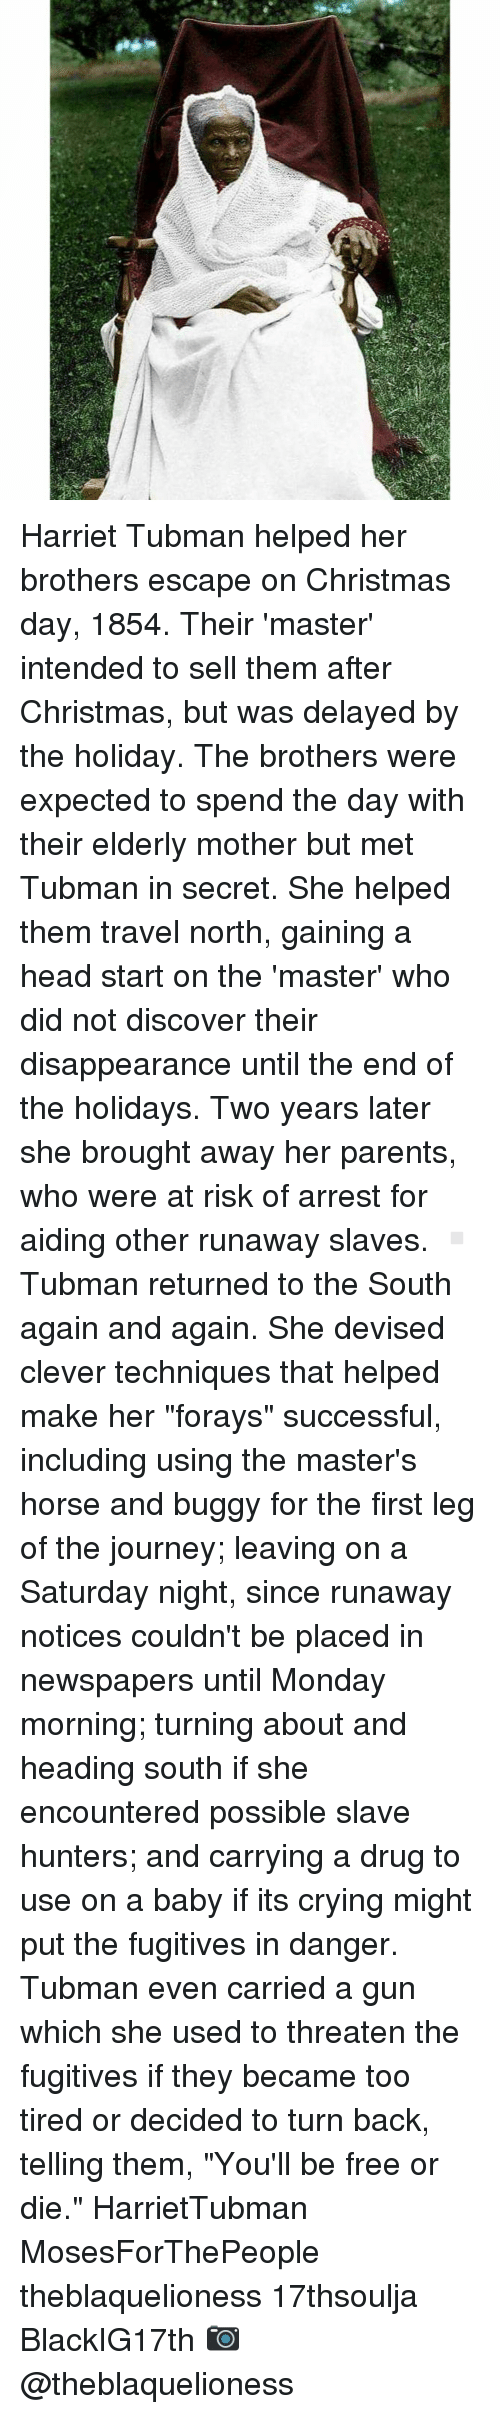 """head start: ㄥ Harriet Tubman helped her brothers escape on Christmas day, 1854. Their 'master' intended to sell them after Christmas, but was delayed by the holiday. The brothers were expected to spend the day with their elderly mother but met Tubman in secret. She helped them travel north, gaining a head start on the 'master' who did not discover their disappearance until the end of the holidays. Two years later she brought away her parents, who were at risk of arrest for aiding other runaway slaves. ▫ Tubman returned to the South again and again. She devised clever techniques that helped make her """"forays"""" successful, including using the master's horse and buggy for the first leg of the journey; leaving on a Saturday night, since runaway notices couldn't be placed in newspapers until Monday morning; turning about and heading south if she encountered possible slave hunters; and carrying a drug to use on a baby if its crying might put the fugitives in danger. Tubman even carried a gun which she used to threaten the fugitives if they became too tired or decided to turn back, telling them, """"You'll be free or die."""" HarrietTubman MosesForThePeople theblaquelioness 17thsoulja BlackIG17th 📷 @theblaquelioness"""